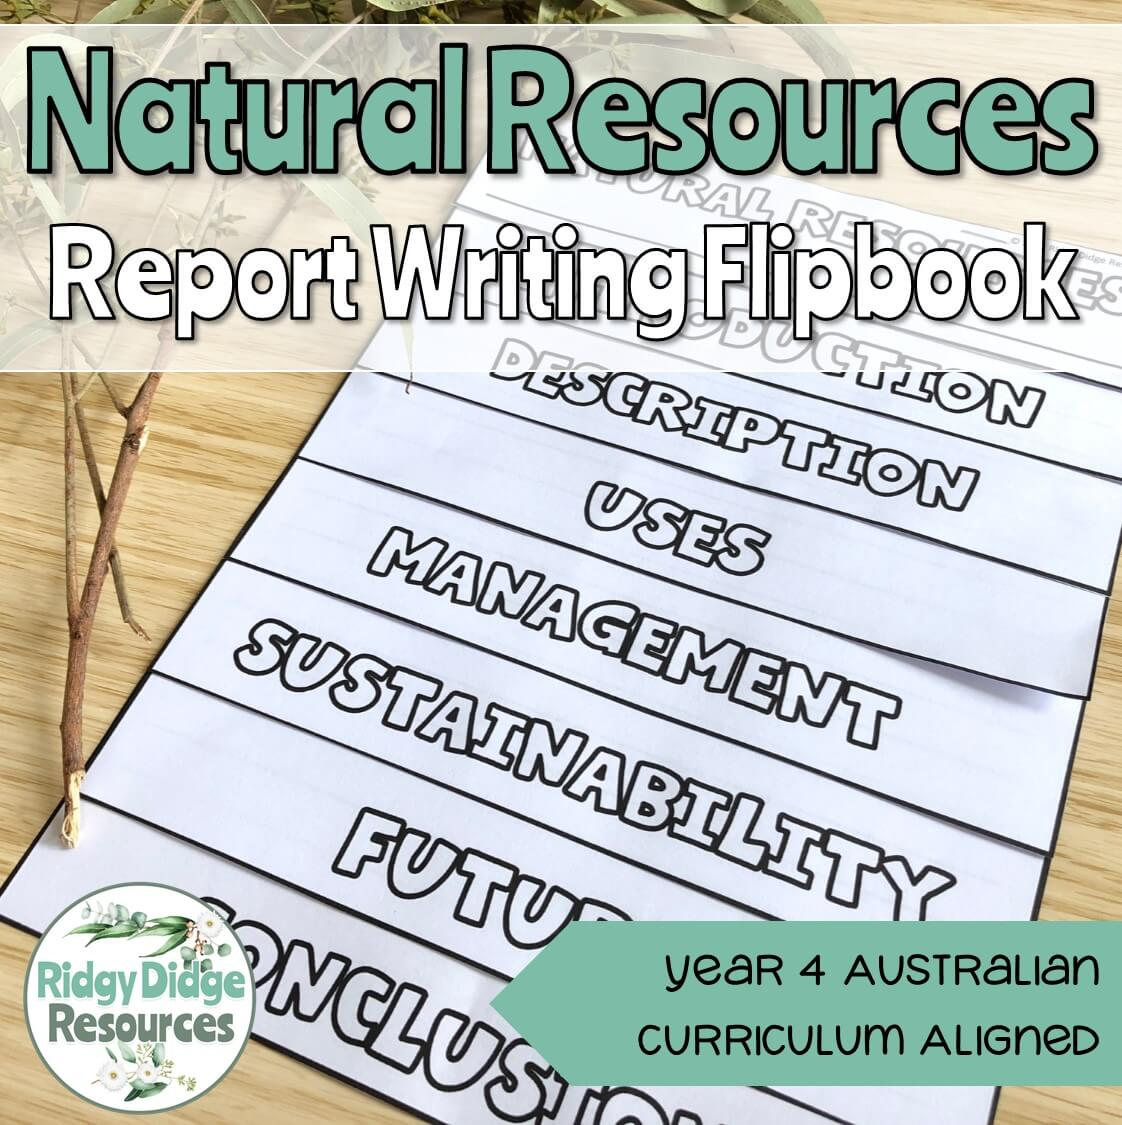 Natural Resource Information Report Writing Flipbook - Ridgy Didge ...